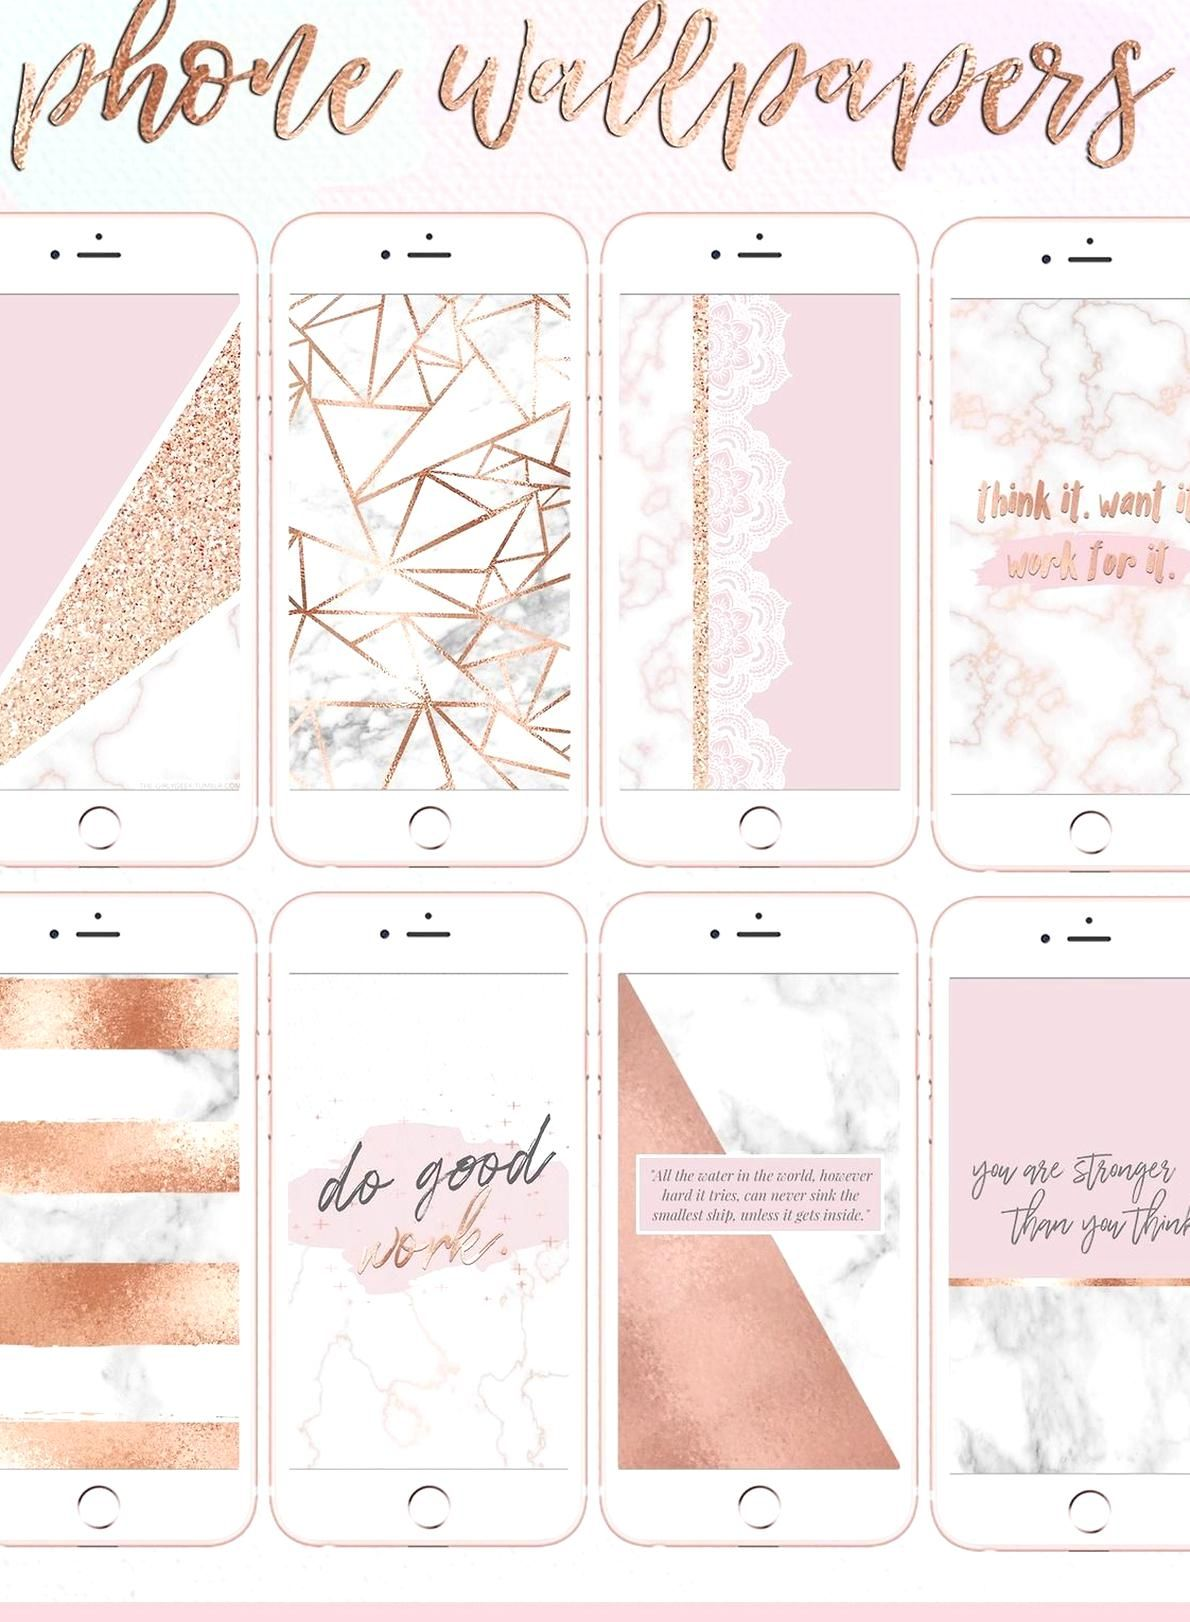 Phone Versions Of My Rose Gold Marble Desktop Wallpapers Are Finally Here Thanks For B In 2020 Rose Gold Marble Wallpaper Gold Marble Wallpaper Rose Gold Wallpaper